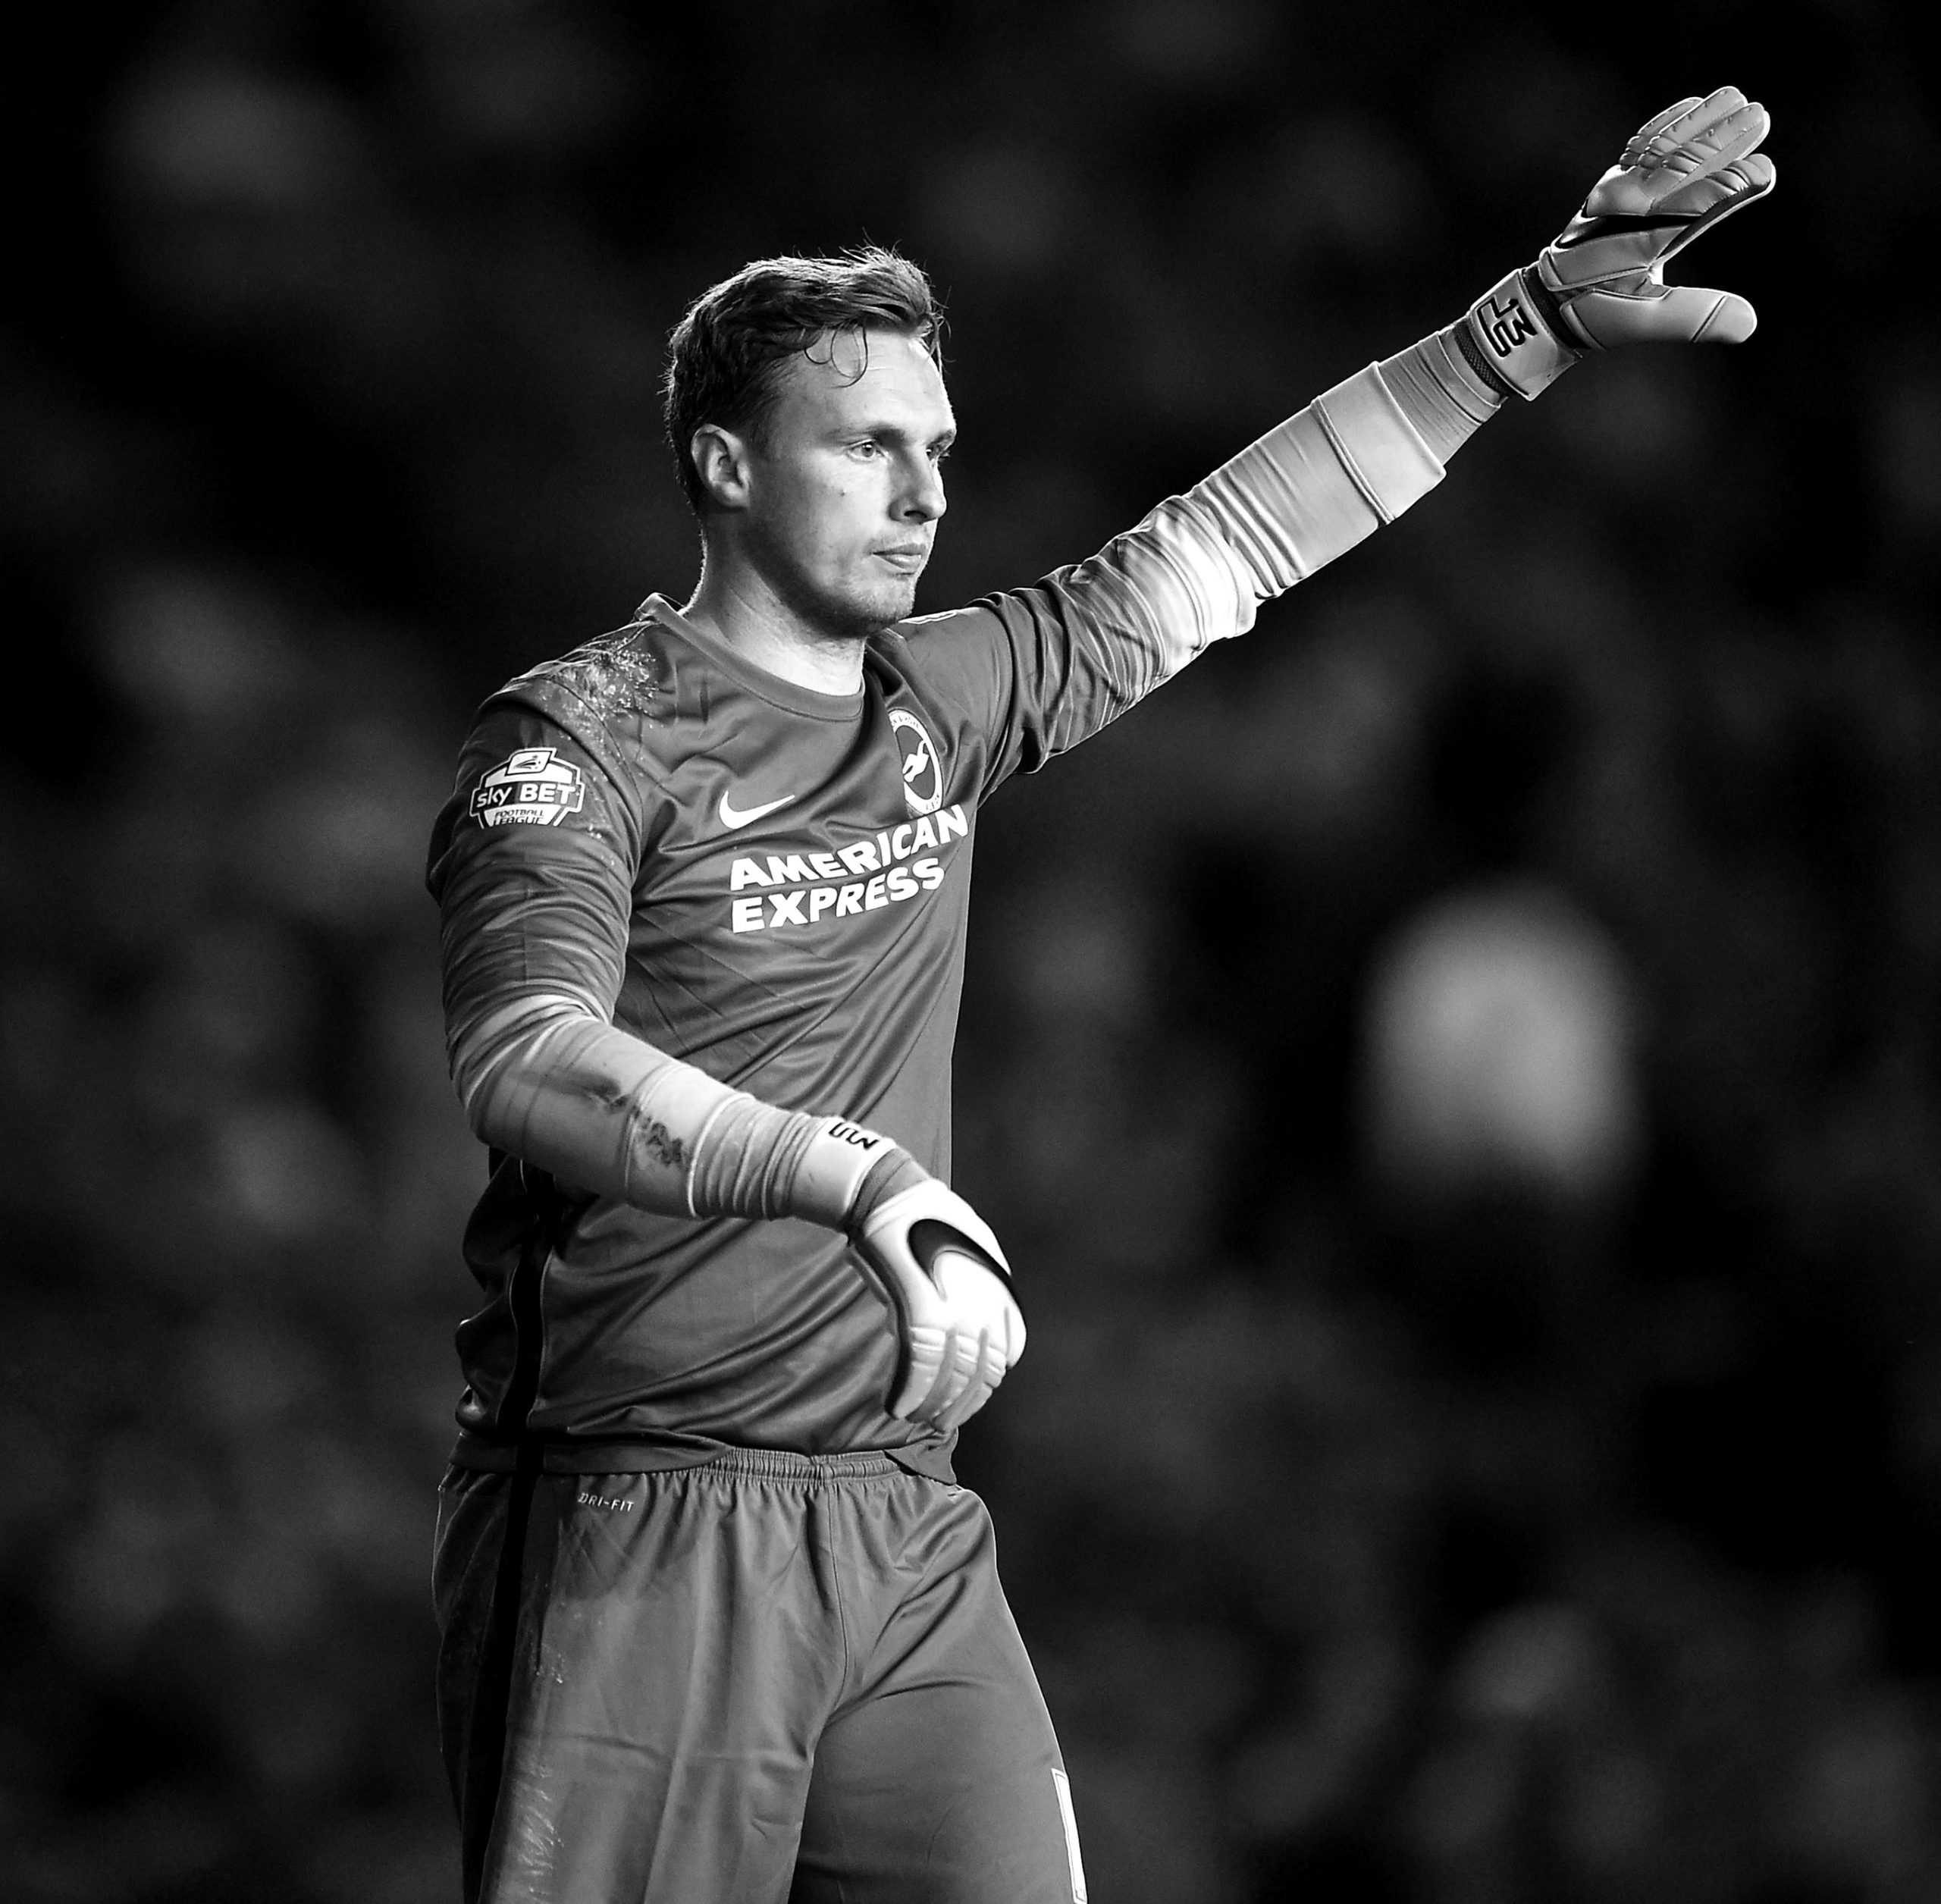 David Stockdale on the pitch, holding his hand up in the air asking for the ball